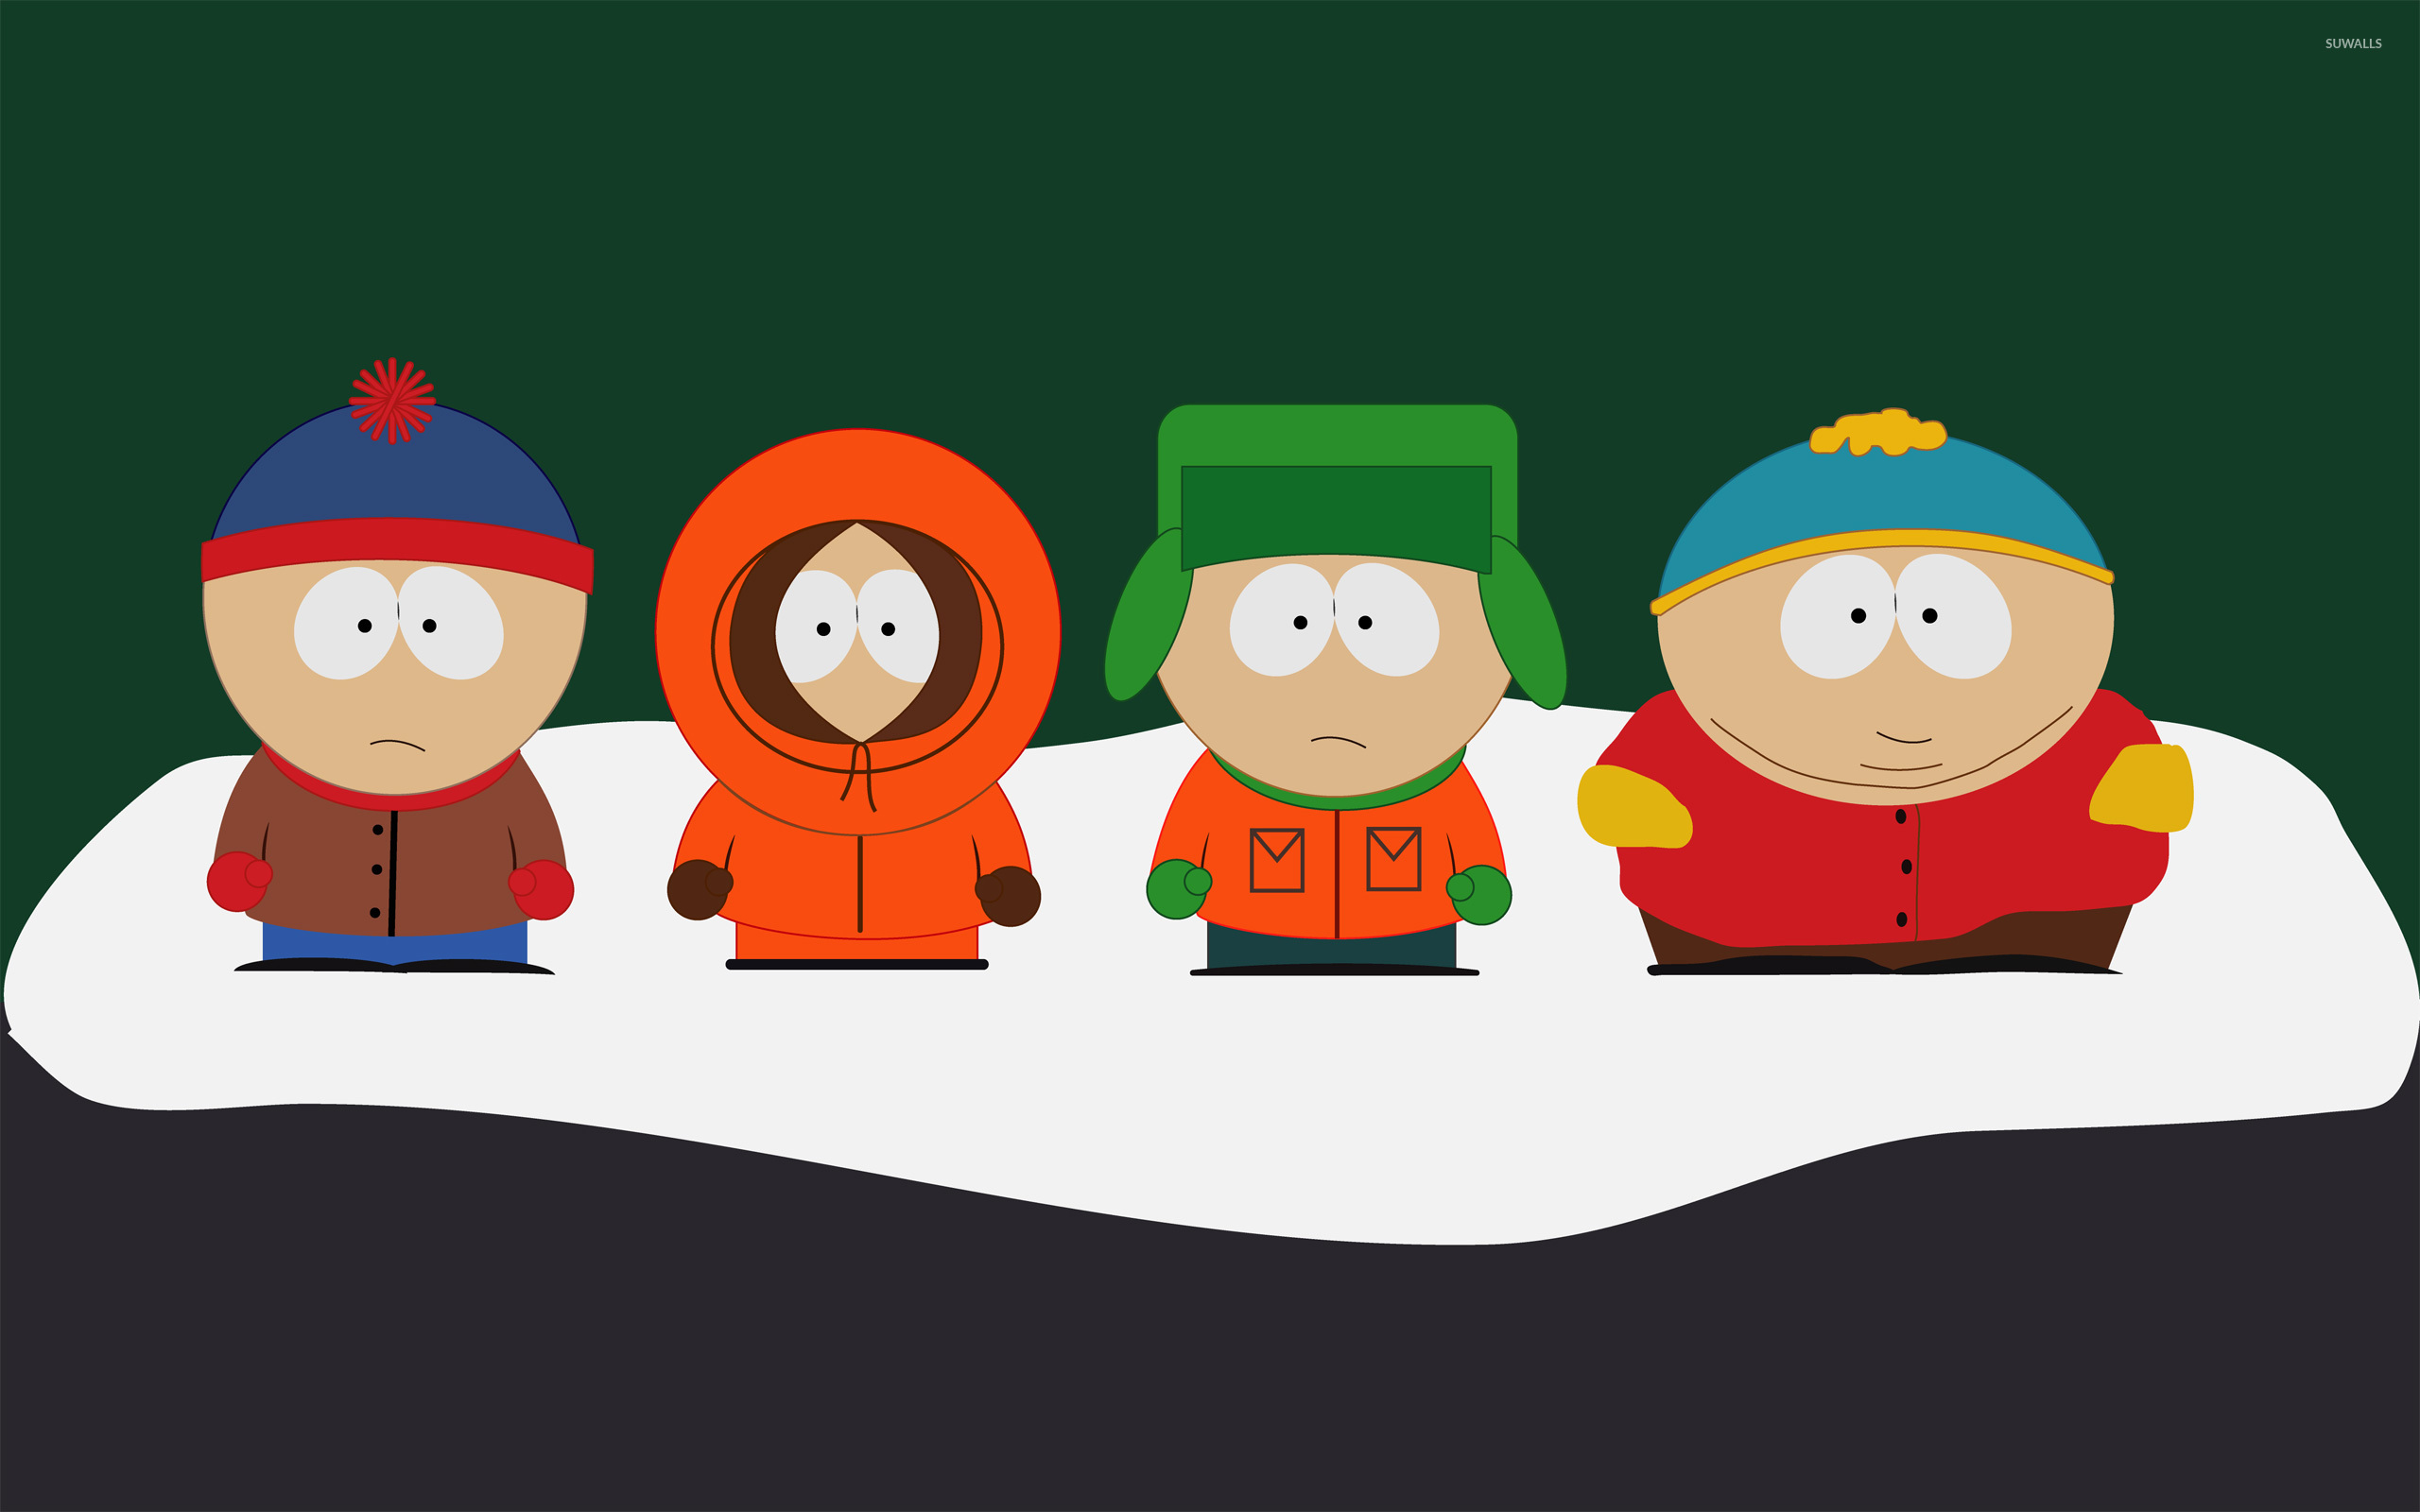 Image tags:south park, the stick of truth, game, ubisoft